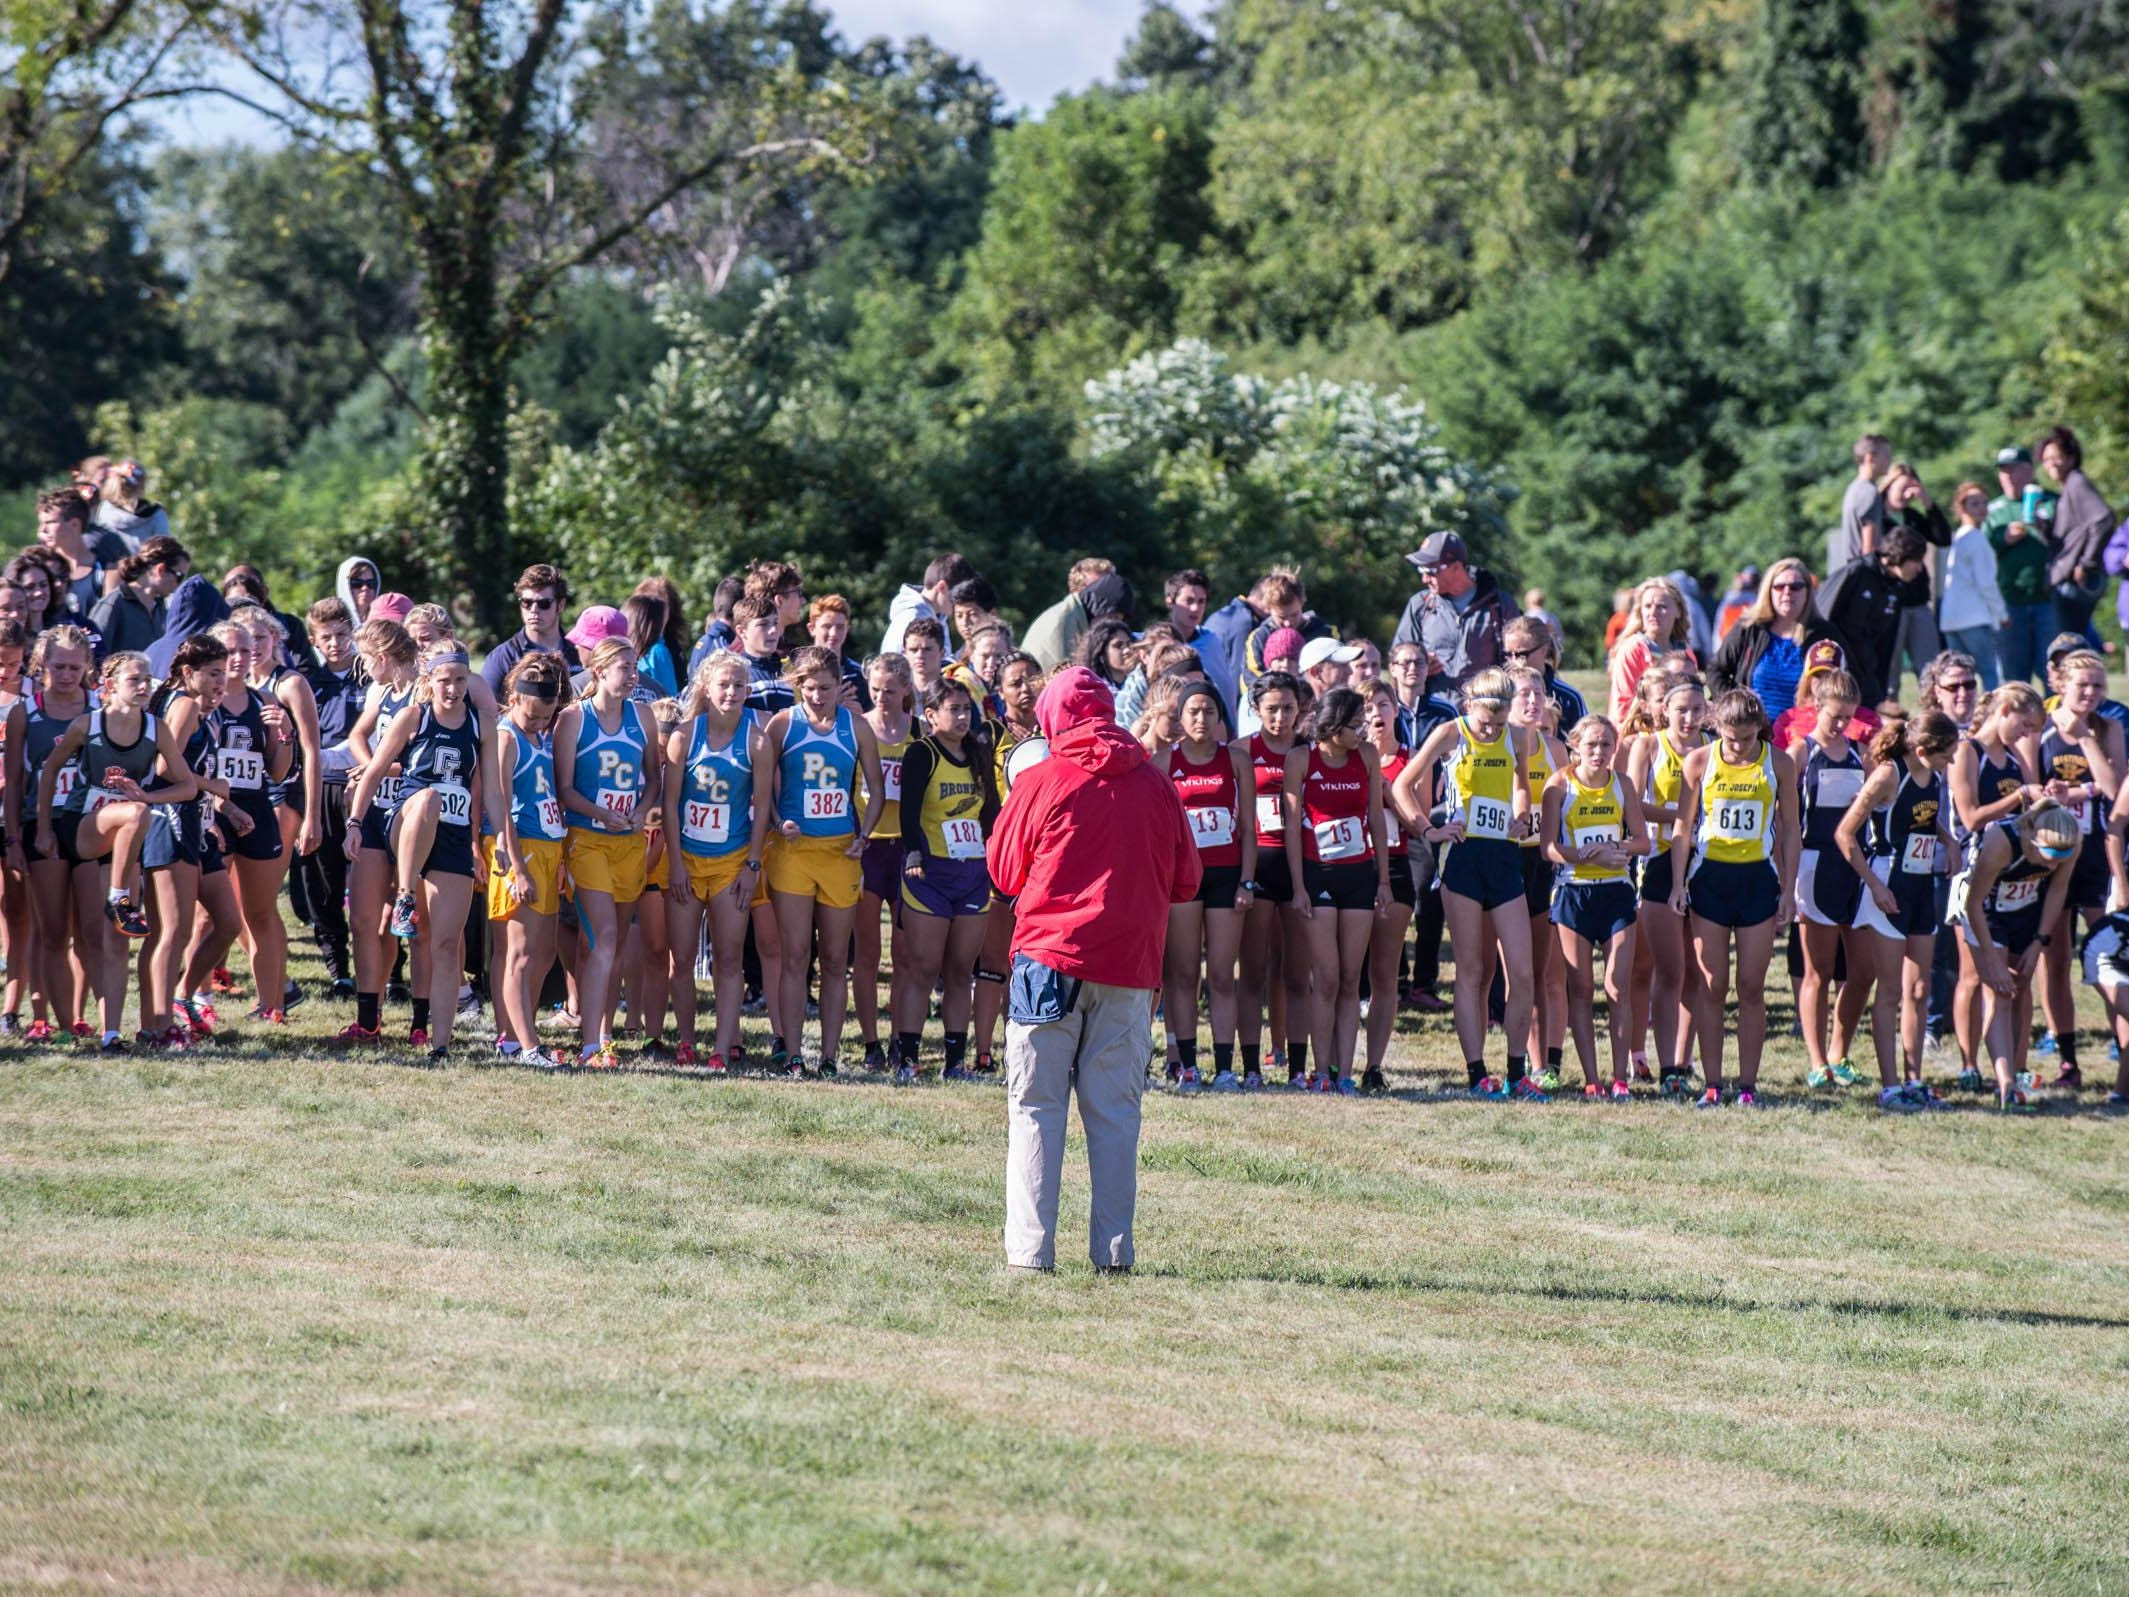 Runners gather at the starting line for the Lakeview Invitational on Sept. 12.